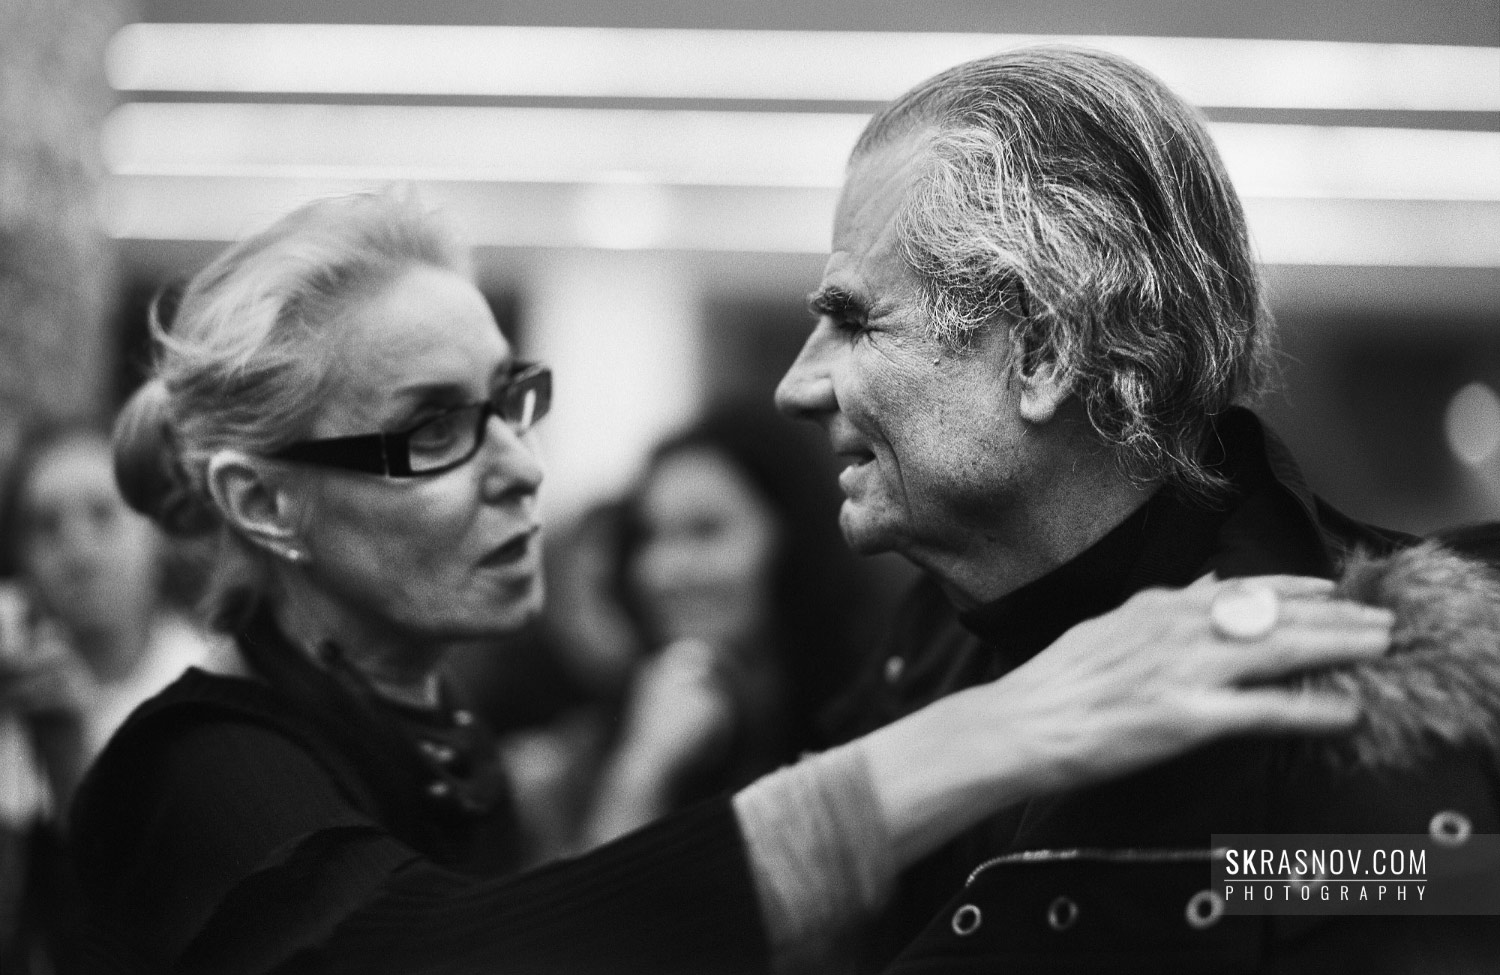 Olga Sviblova, head of Moscow House of Photography and Patrick Demarchelier, photographer © Sasha Krasnov Photography